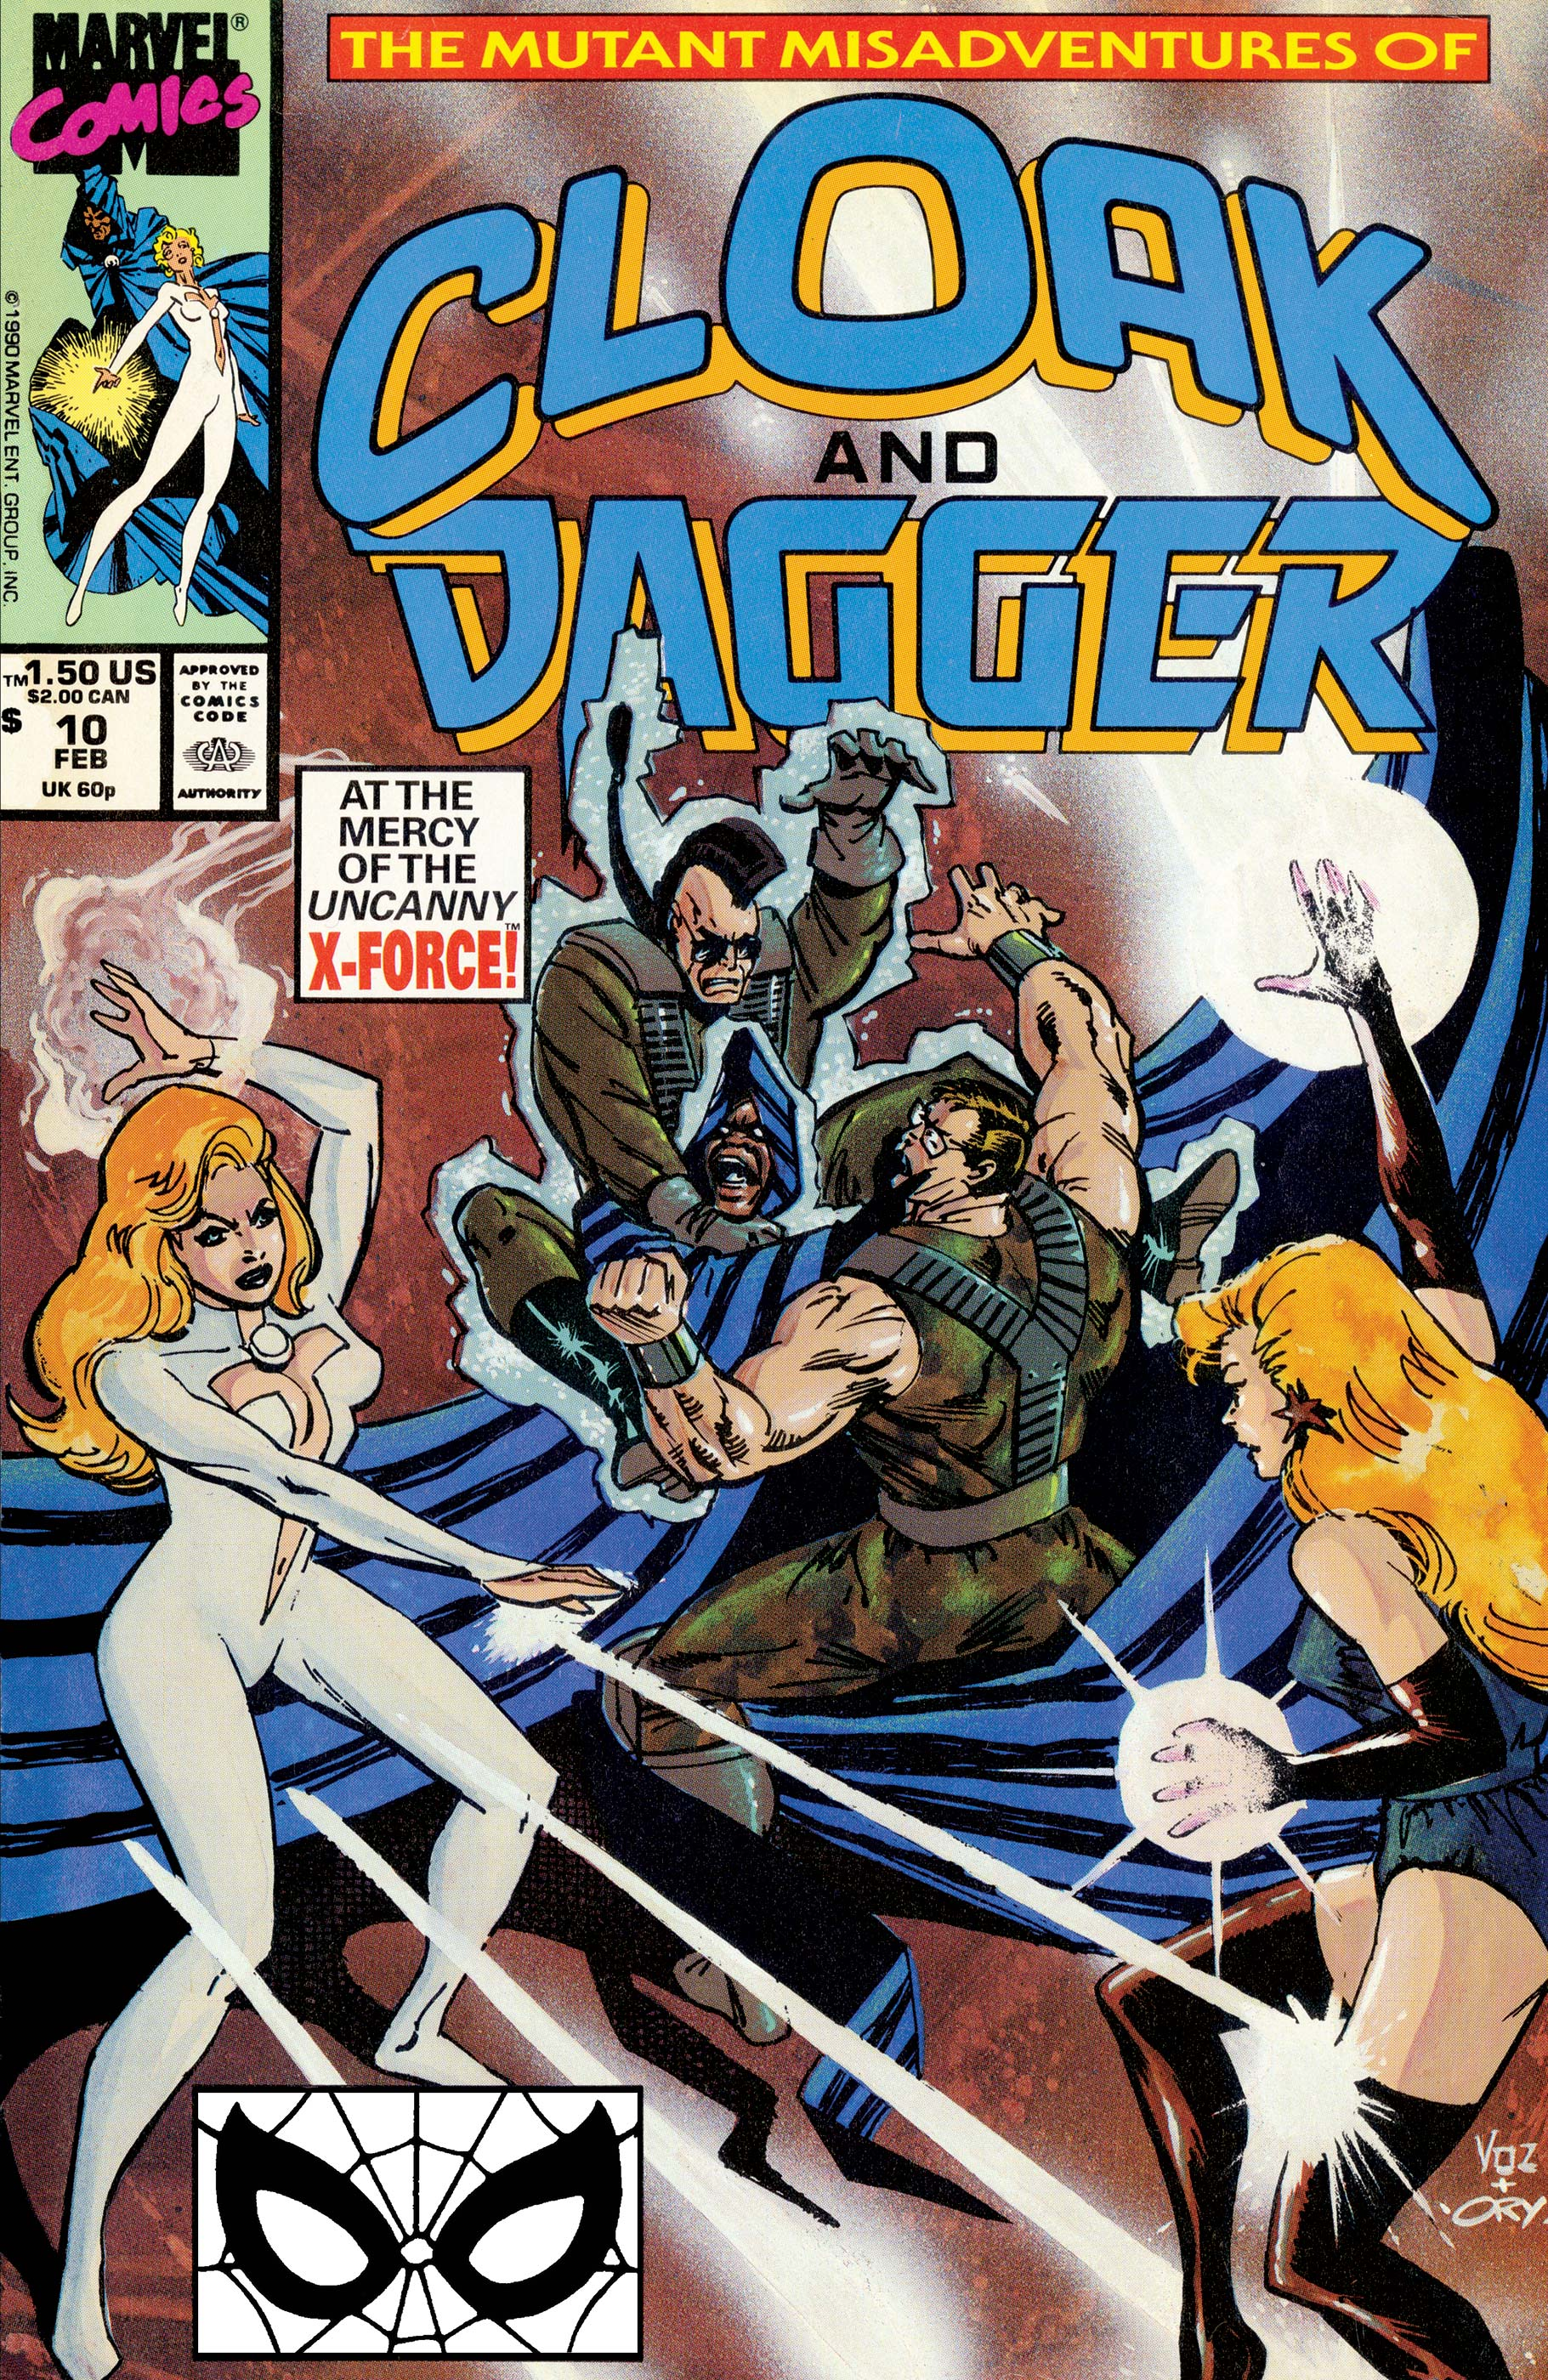 The Mutant Misadventures of Cloak and Dagger (1988) #10